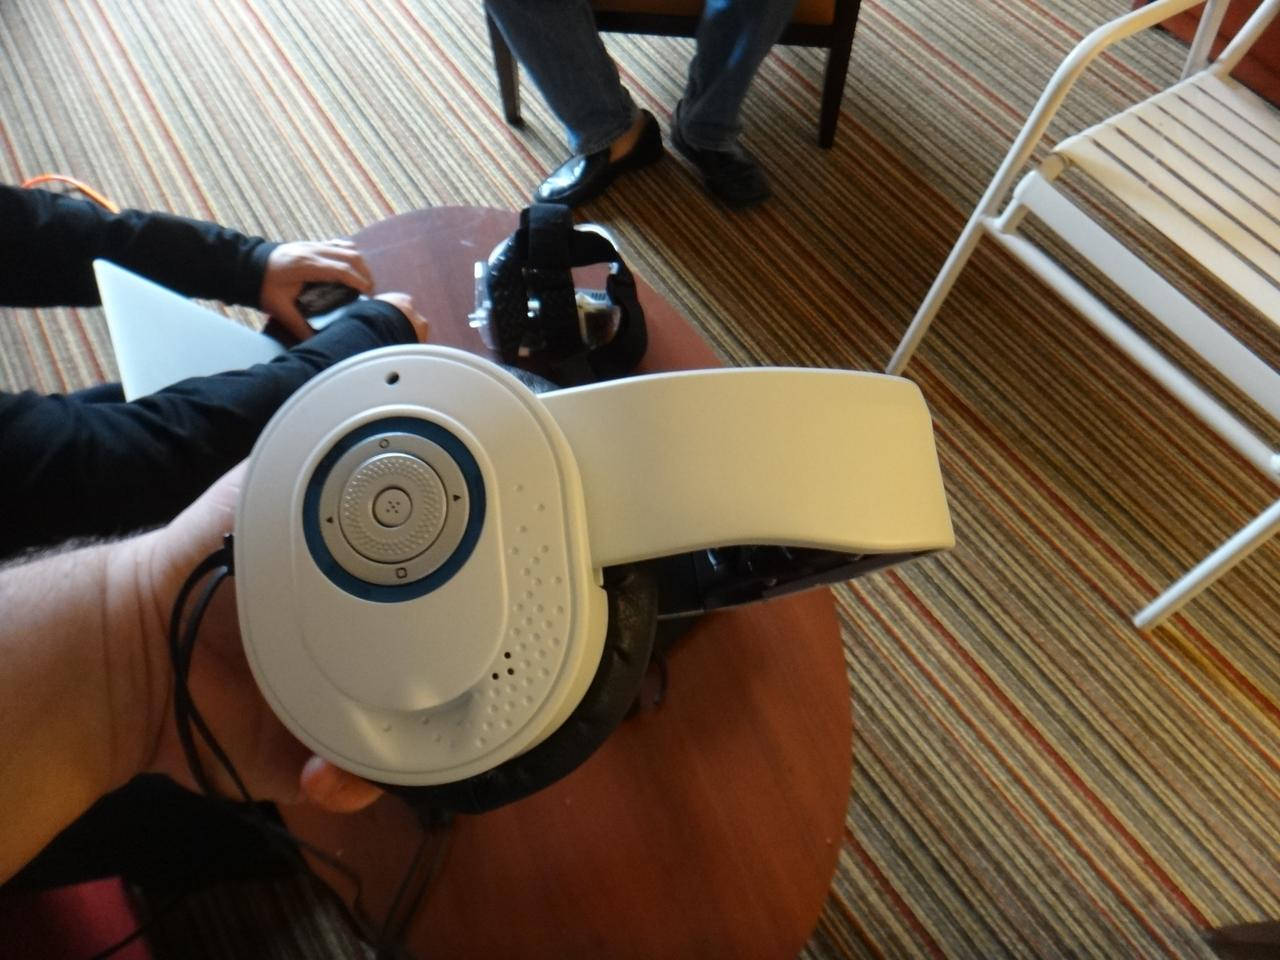 The Glyph's right headphone cup also had a scroll wheel to set the volume